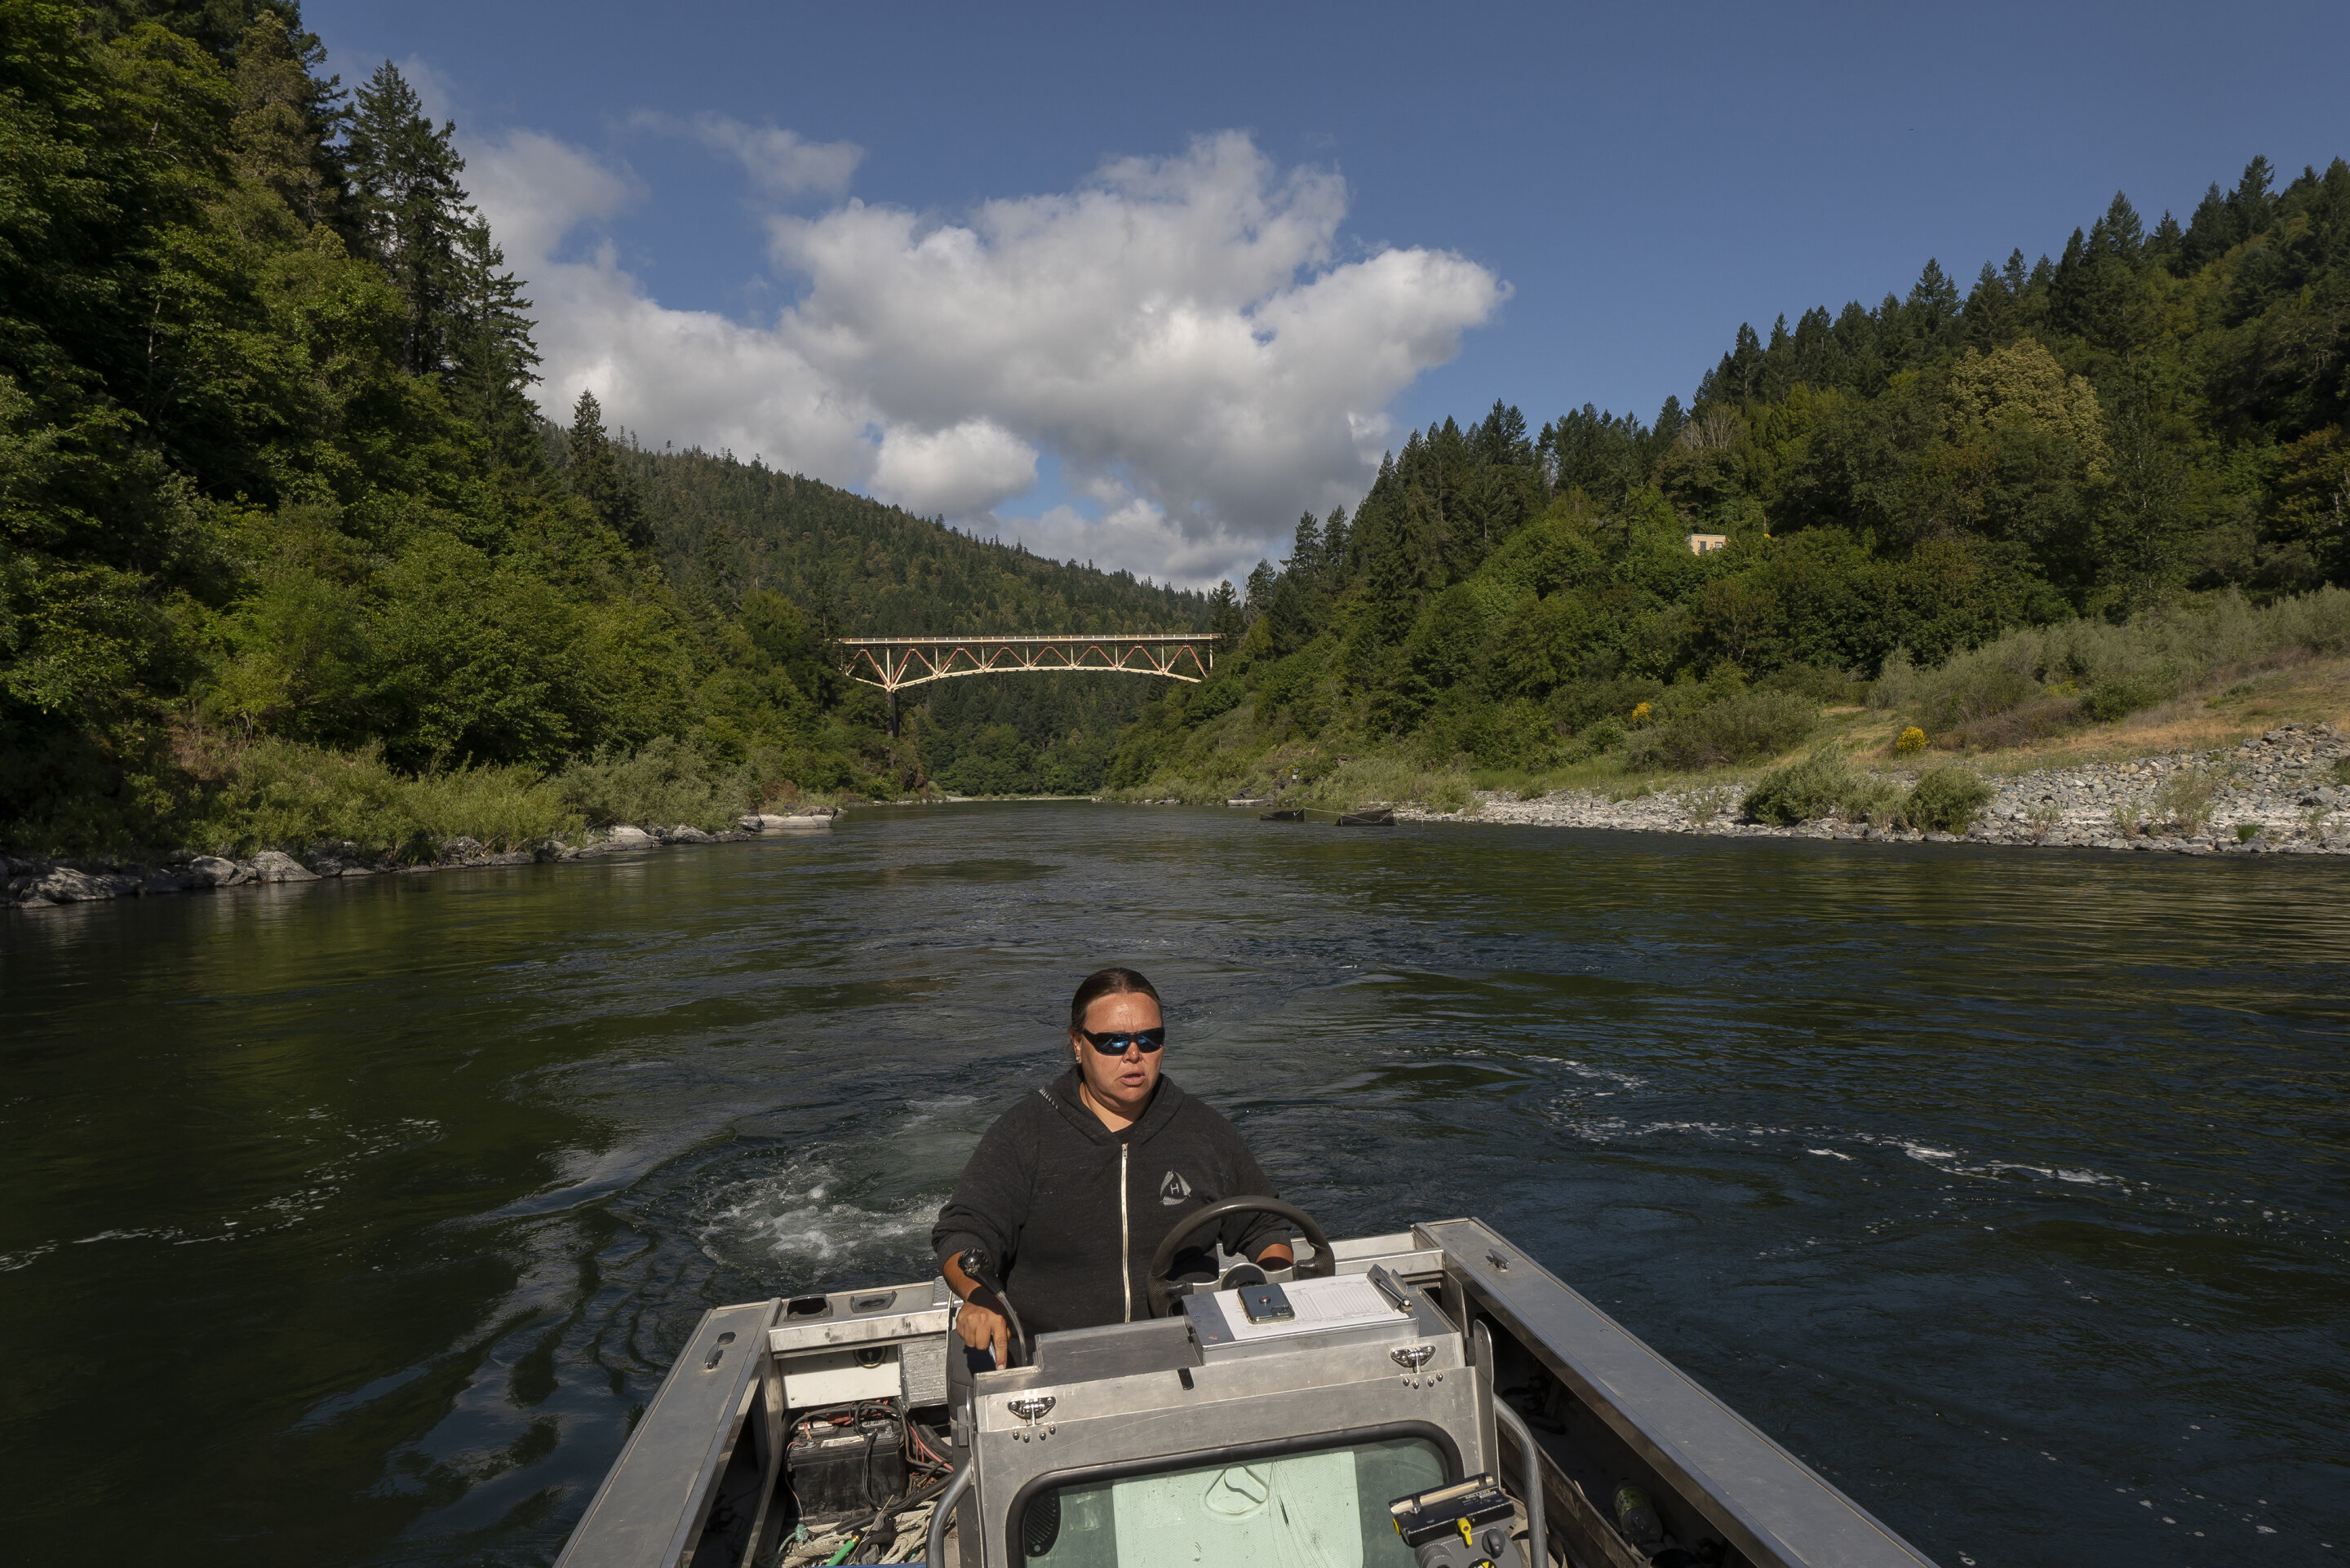 'Nobody's winning' as drought upends life in US West basin